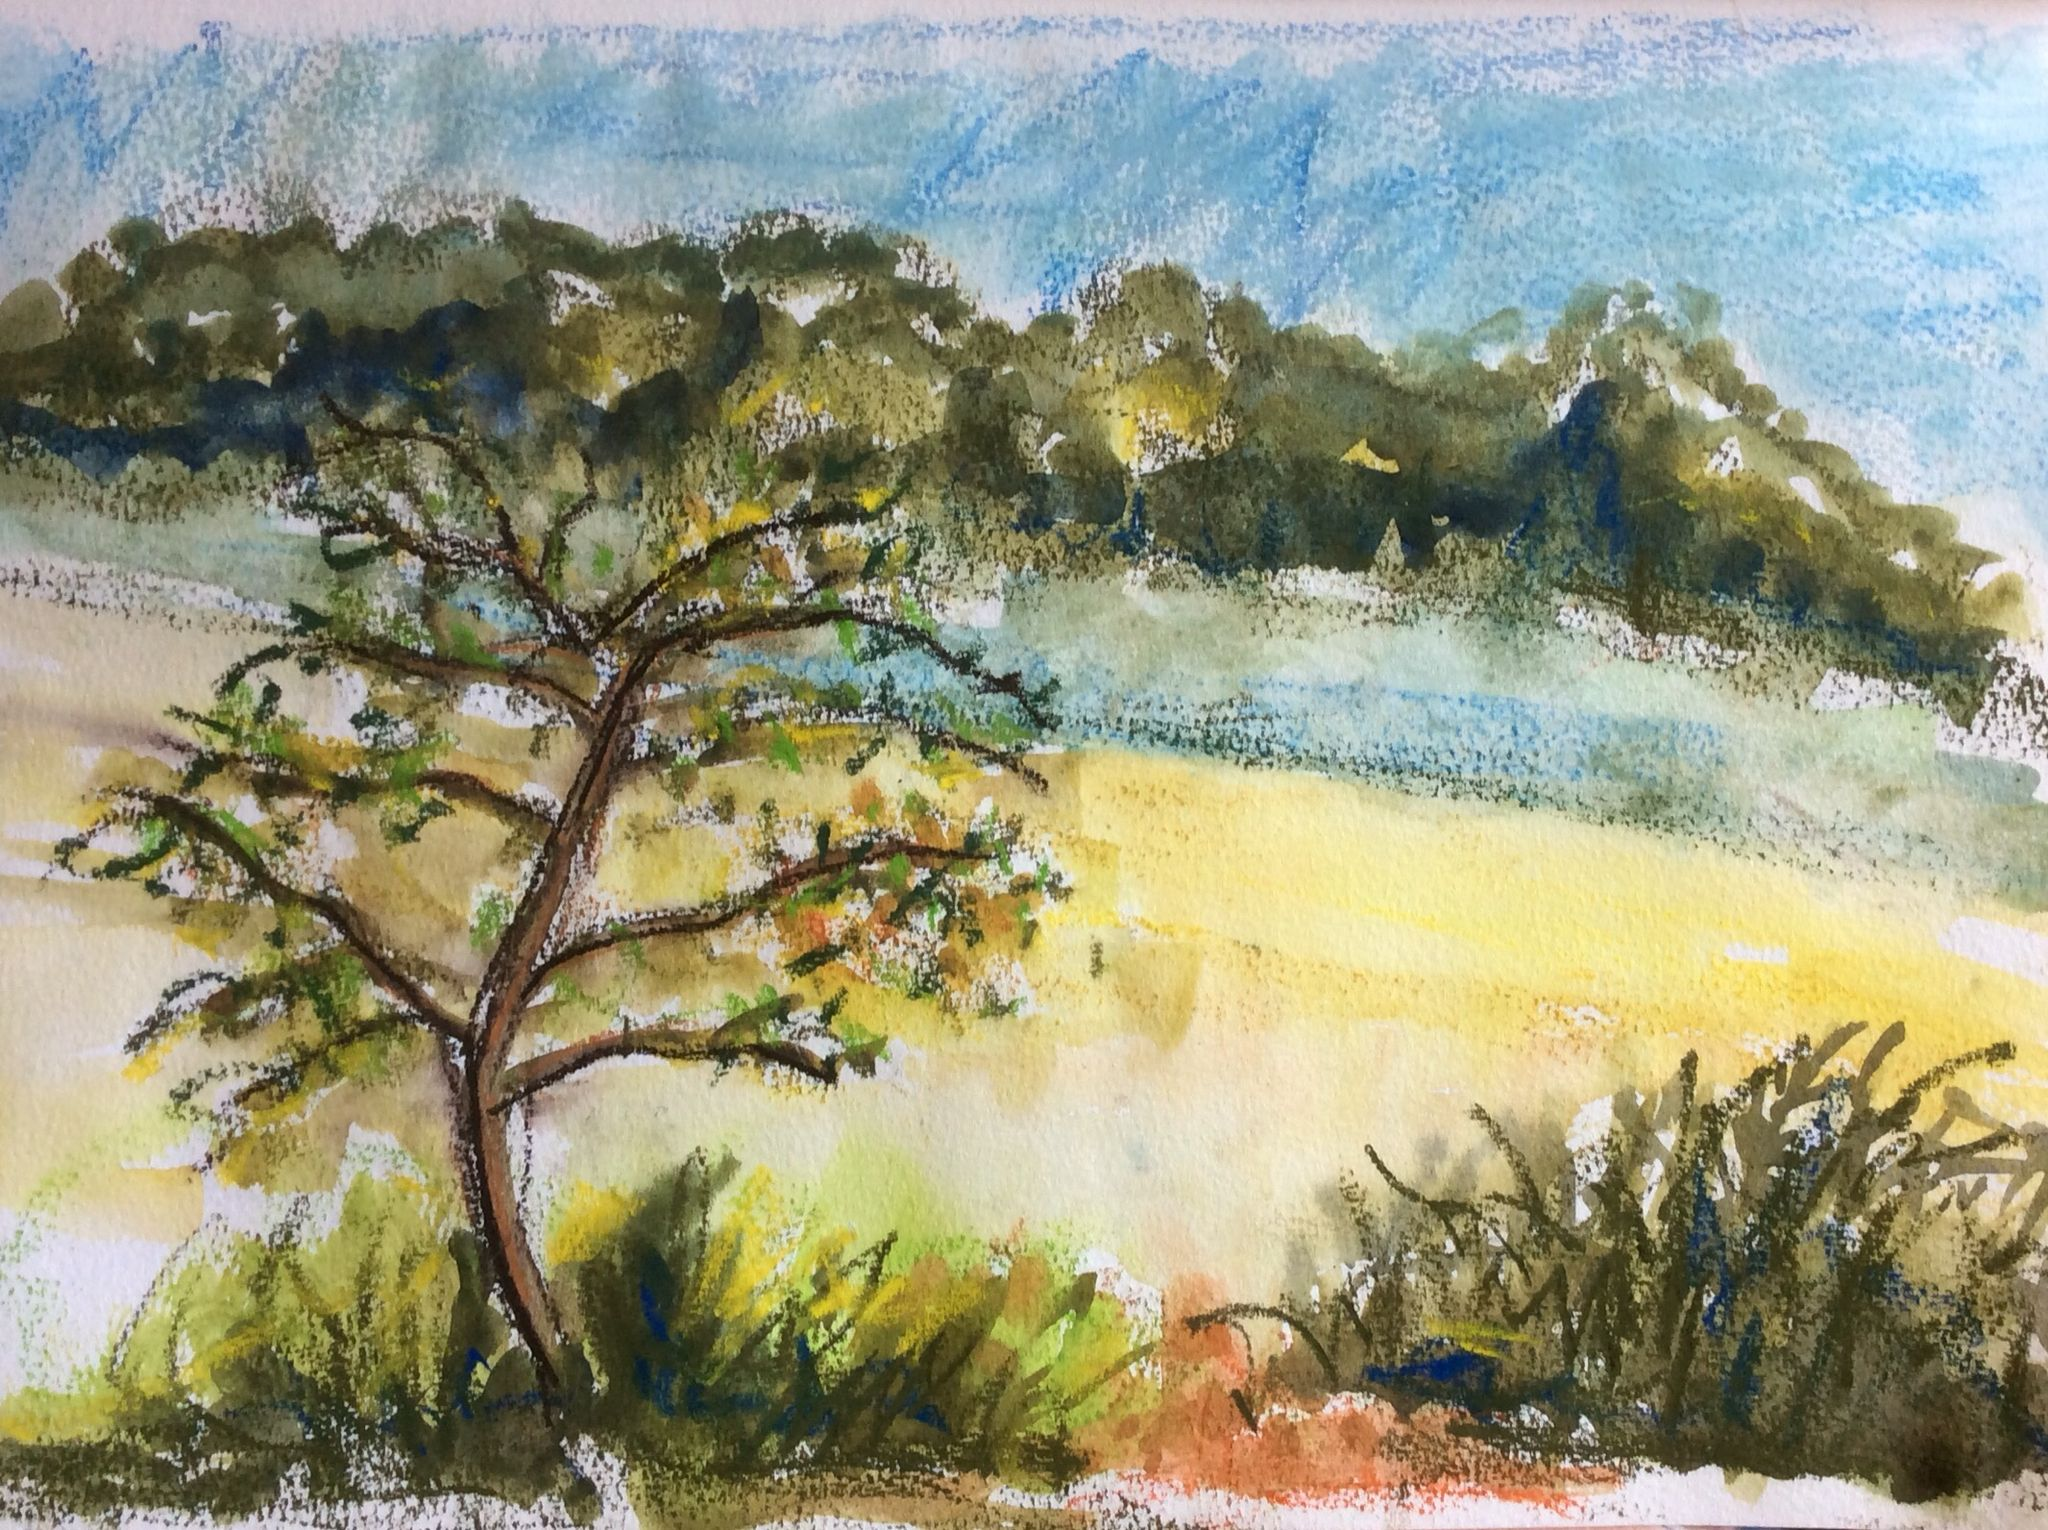 2016-08-30 7.30am Mist in the field